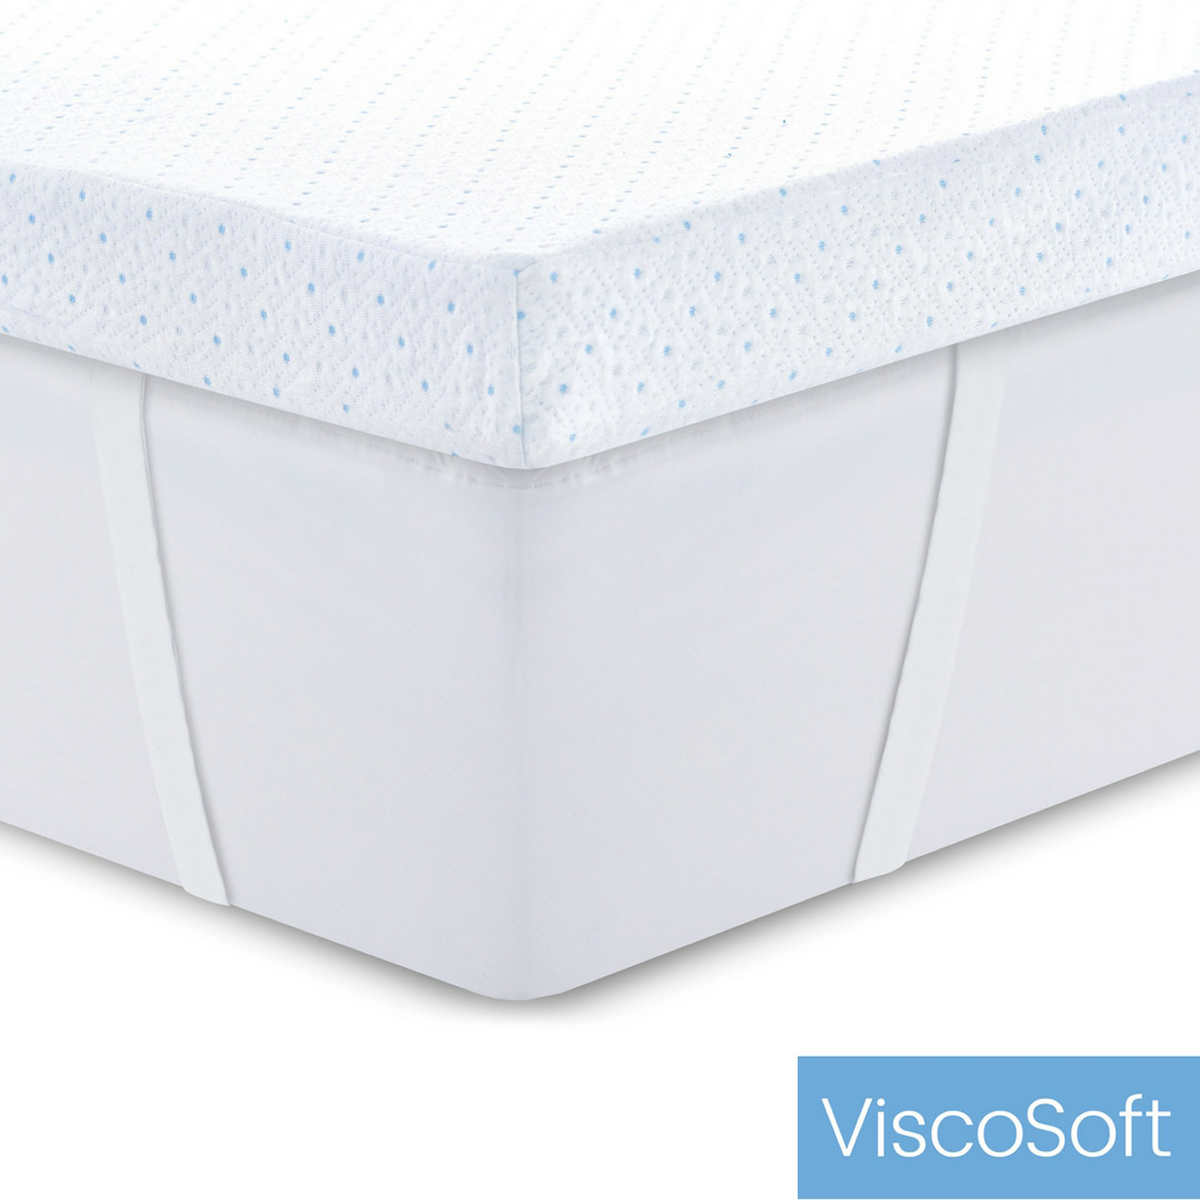 ViscoSoft Gel-Infused Memory Foam Mattress Topper with Slip-Resistant Cover